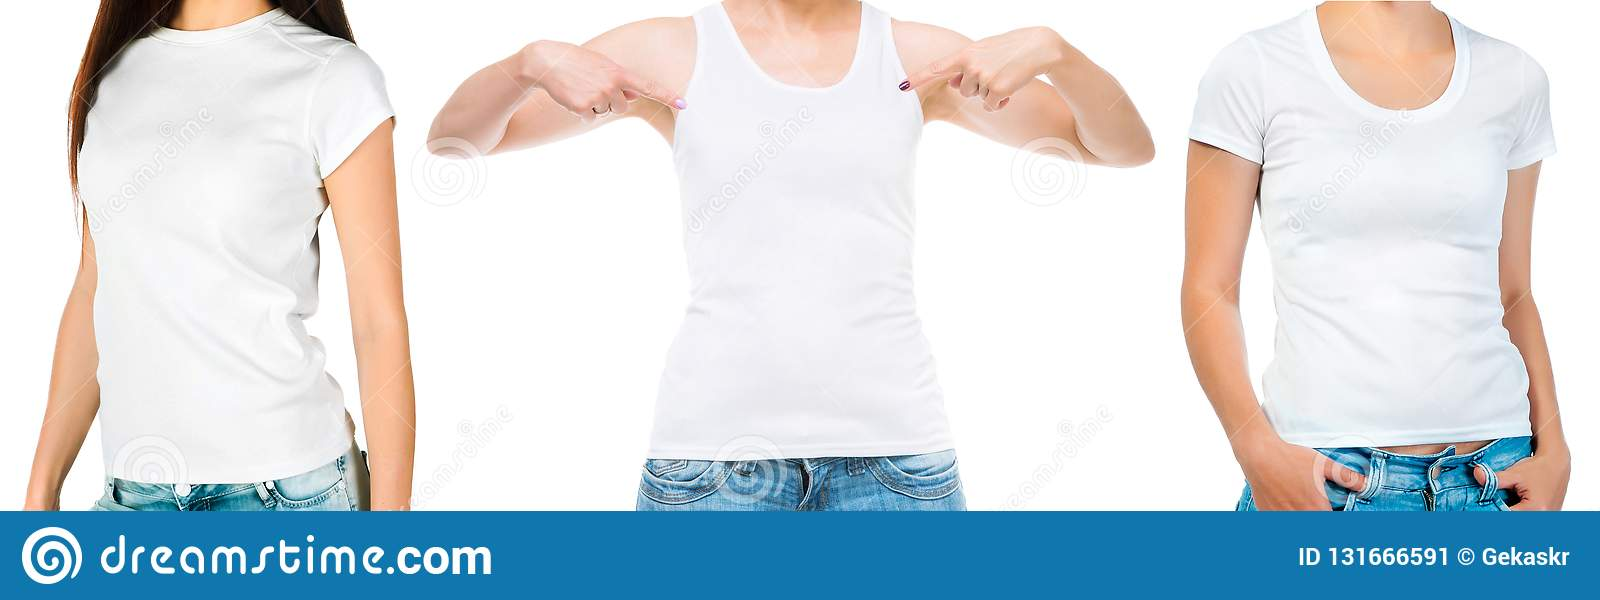 a855a7d4de14a9 Set of girls in a white singlet and shortsleeved top isolated on white  background for your design